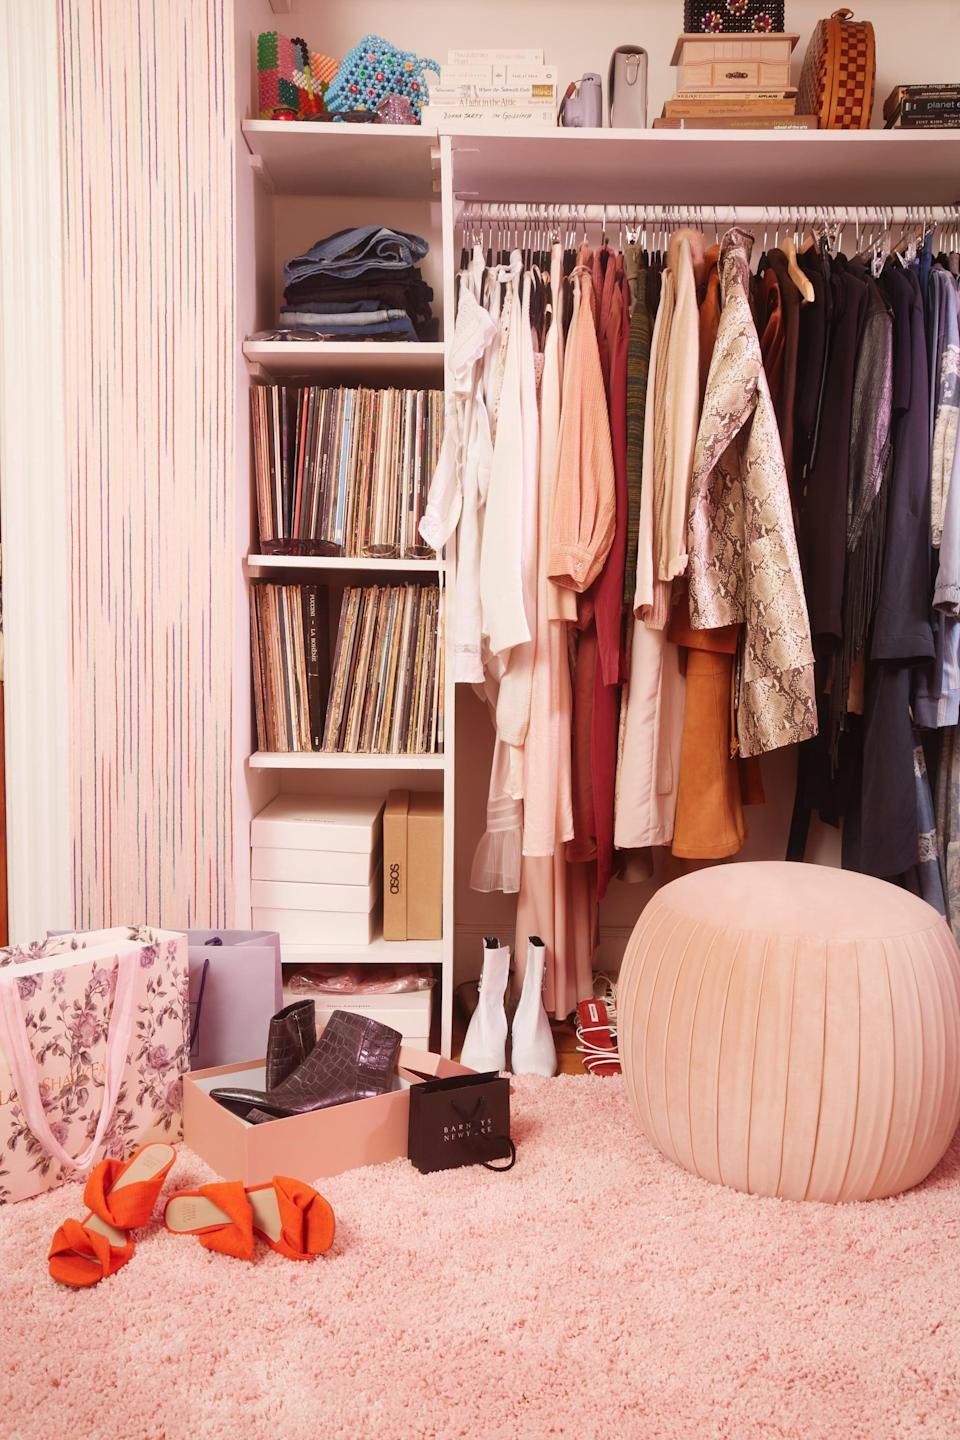 <p>I'm a big believer in regular purges with your wardrobe (and everything else in your home), so I try to do so at least twice a season, if not more. The easiest way to make a task like this seem less daunting is to break it down by section. For me, this started with the hanging items in my closet. I tried on all the styles I no longer gravitated toward yet continued to keep with every purge. Those pieces were out of there! Then, I moved on to my folded items, then onto bags, shoes, and jewelry. I even revisited my socks, underwear, and workout clothes - I don't know about you, but I always hold on to more than is necessary for these categories and for too long. I made sure to say goodbye to clothing that no longer fit or that never fit in the first place, like pieces I'd bought intending to get tailored. I've learned that if I buy something that requires tailoring and don't take care of it from the get-go, I never will. When I come across those items during a purge, it's a clear sign to move on.</p>